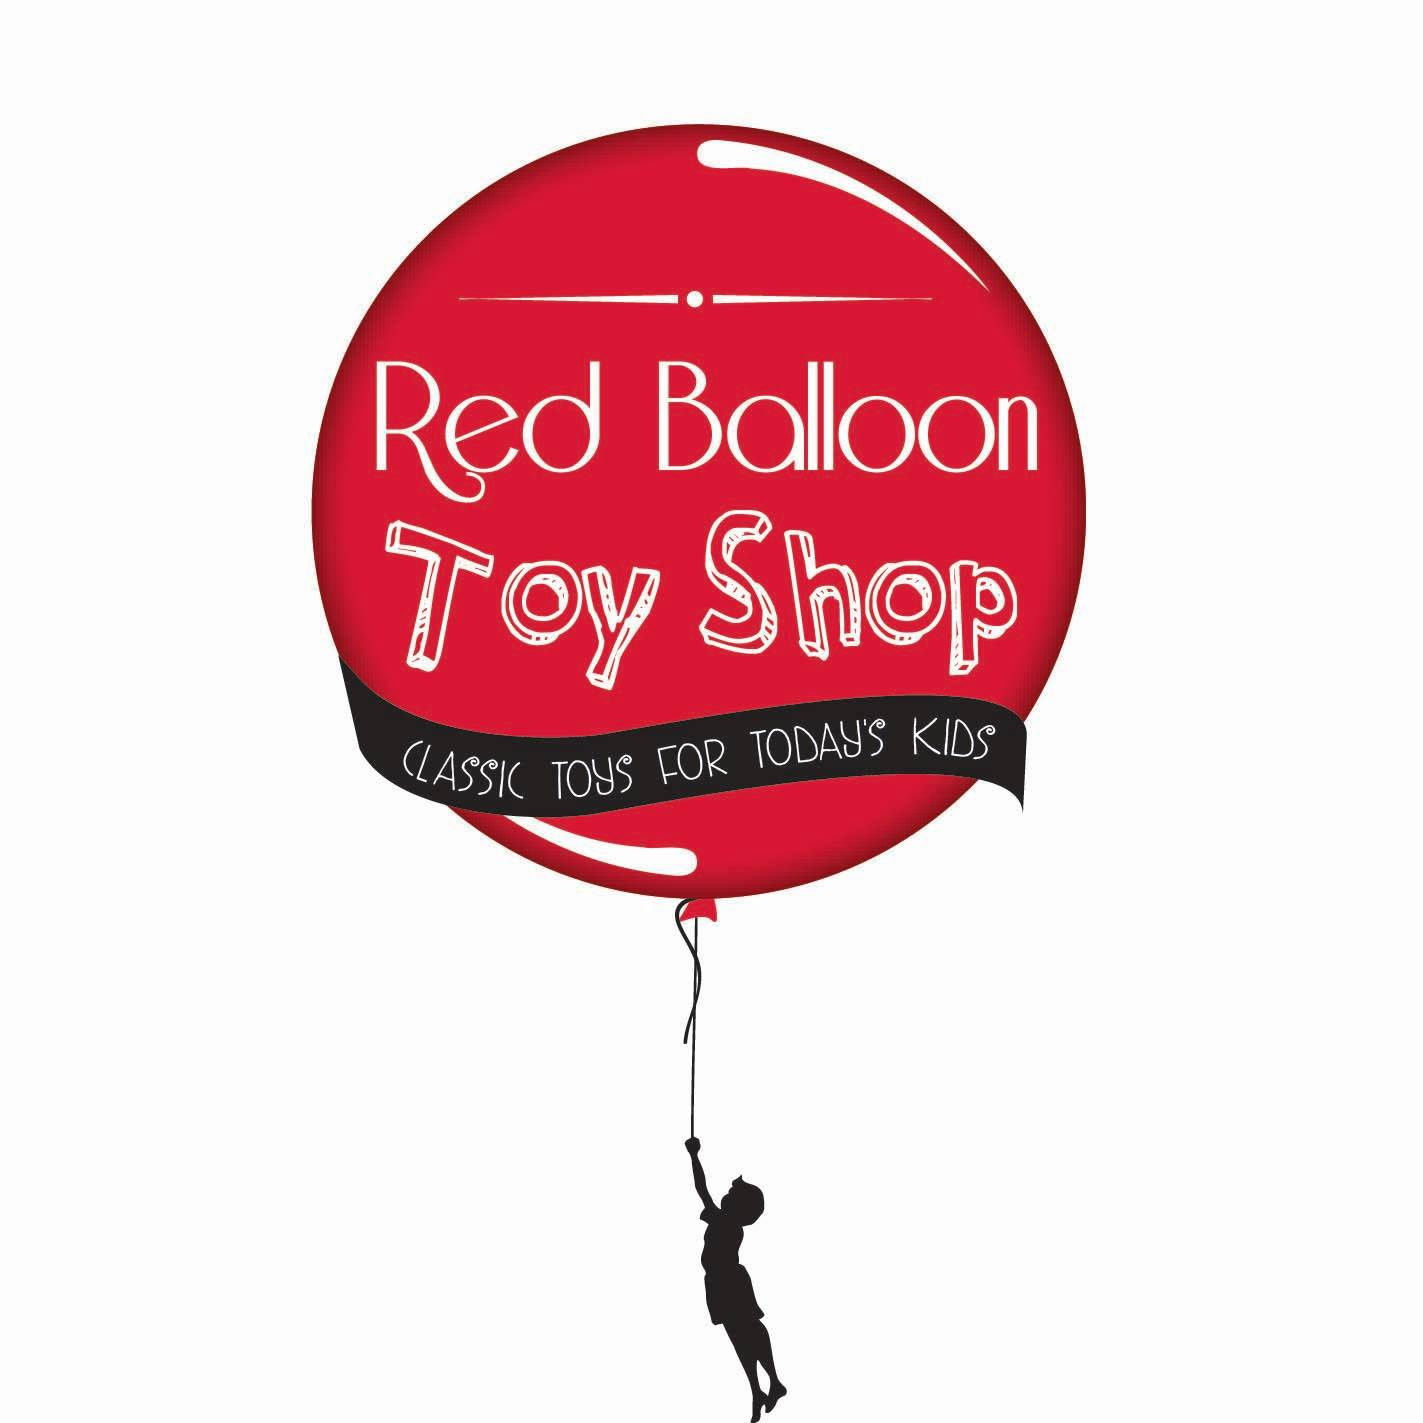 Red Balloon Toy Shop logo